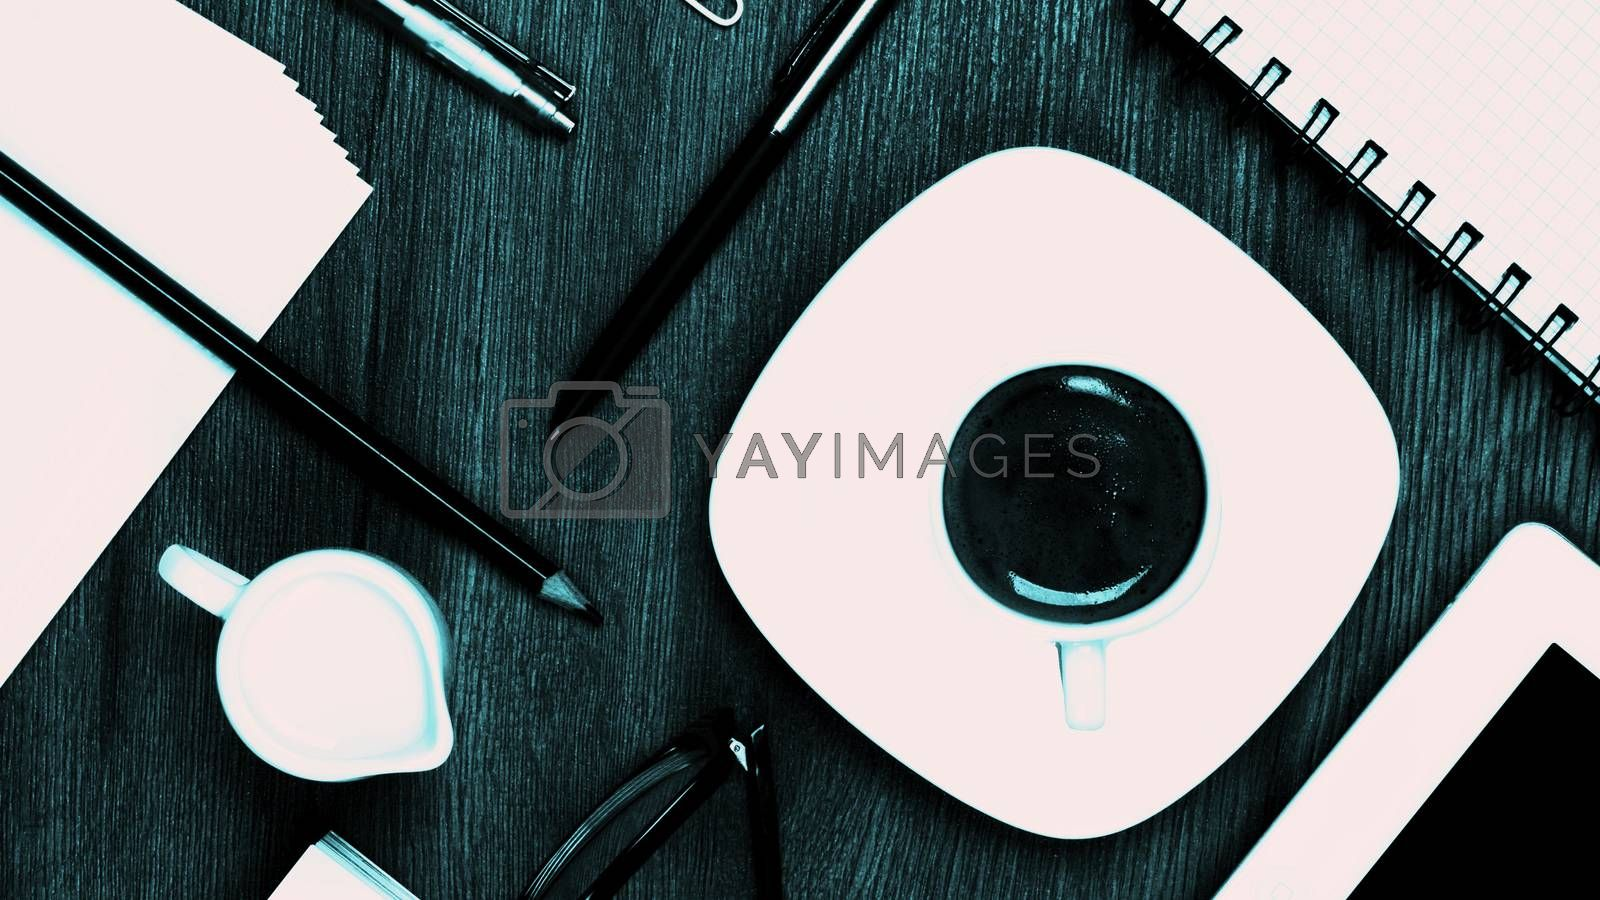 Coffee Break Concept with Stationery Items, Coffee Cup with Milk Jug, Digital Tablet and Greens Eyeglasses closeup on Wooden background. Turquoise toned